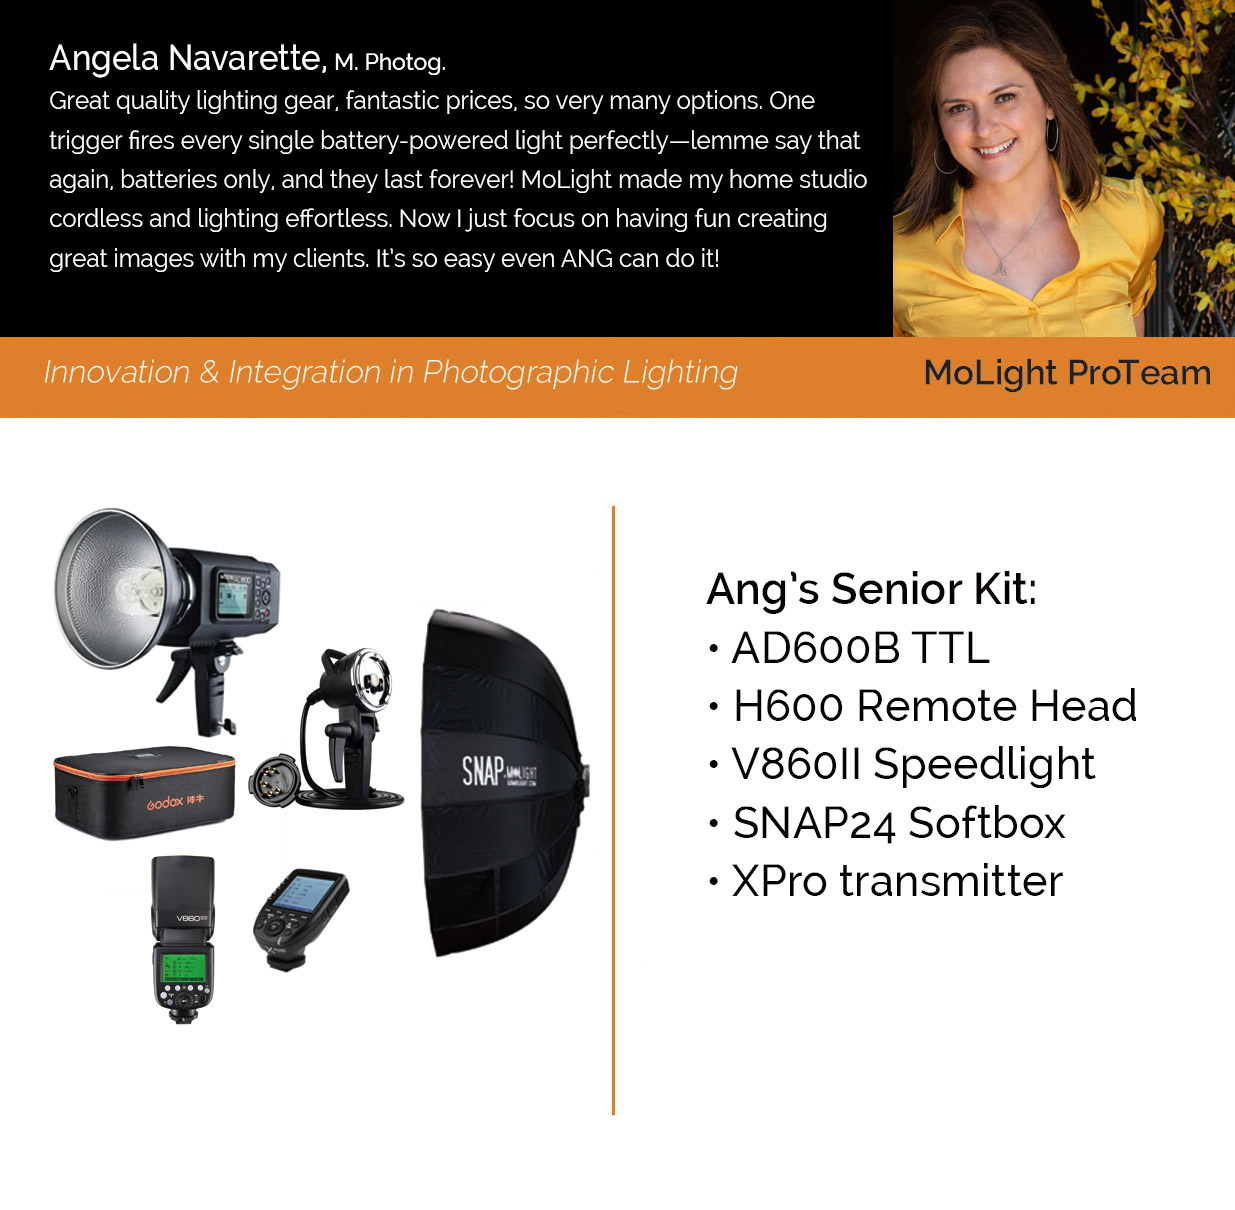 Pro Kit: Angela Navarette Senior Location